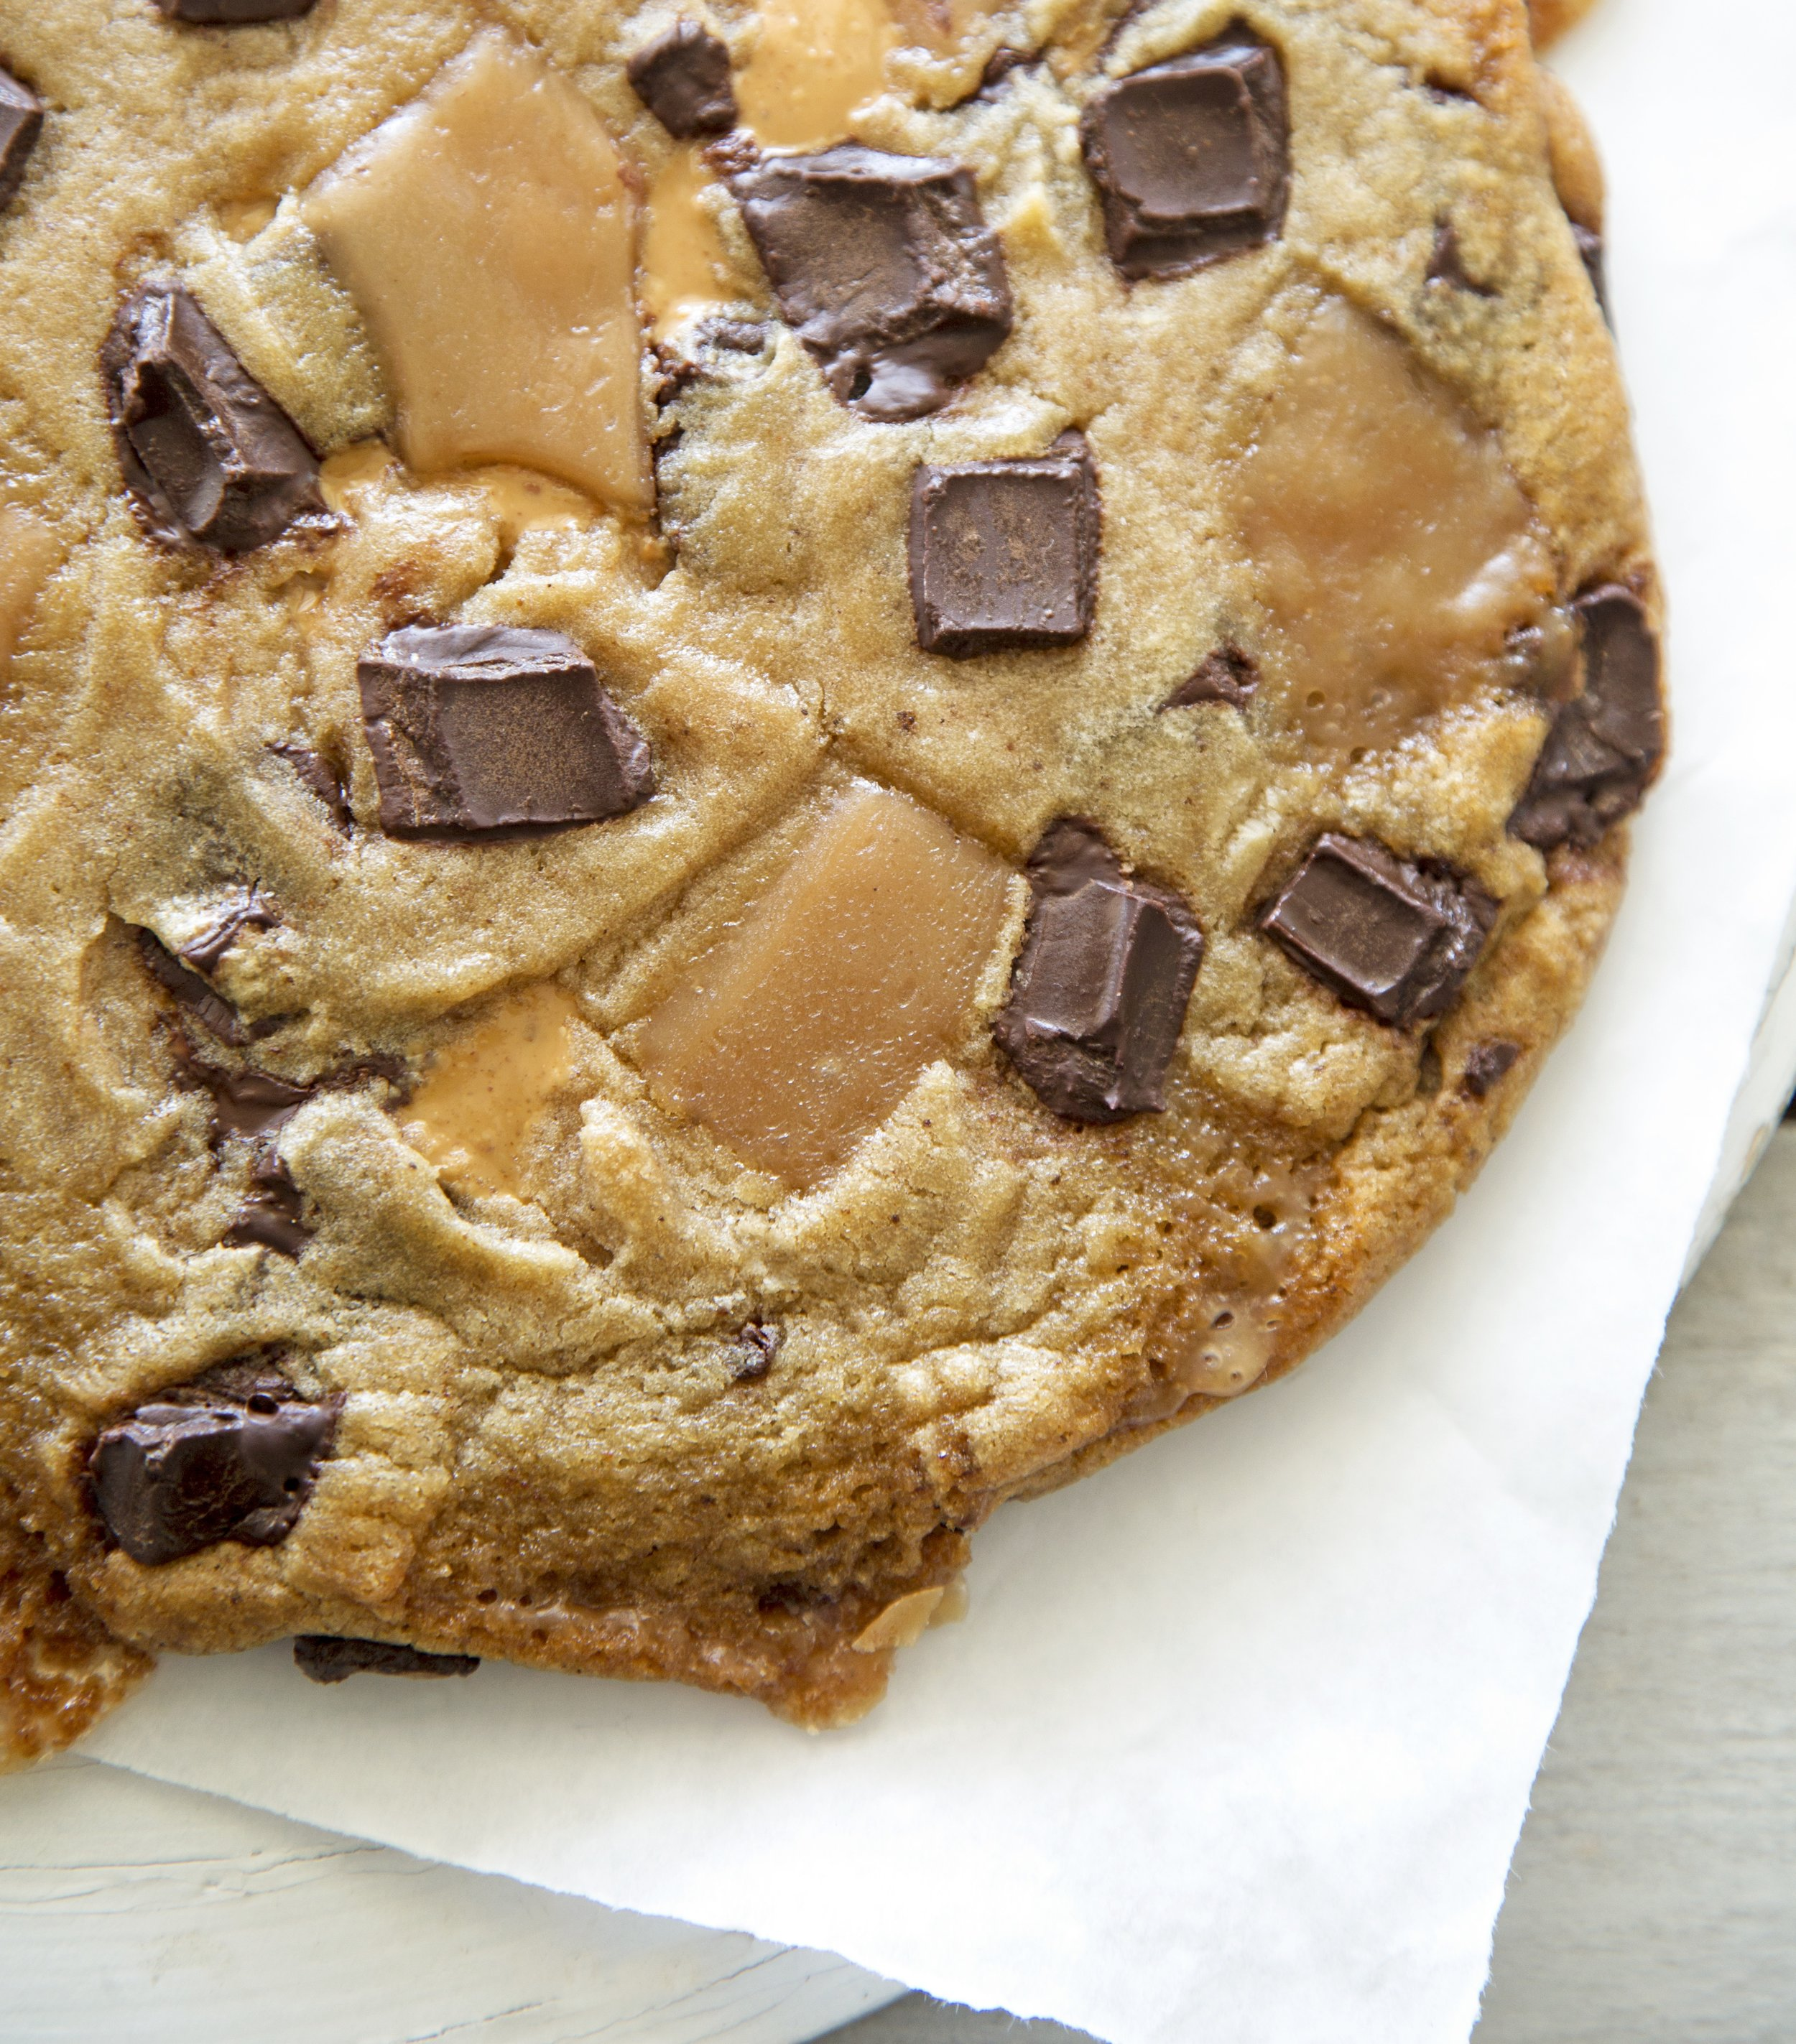 Brown Butter Chocolate Chunk Toffee stuffed with Peanut Butter copy.jpg